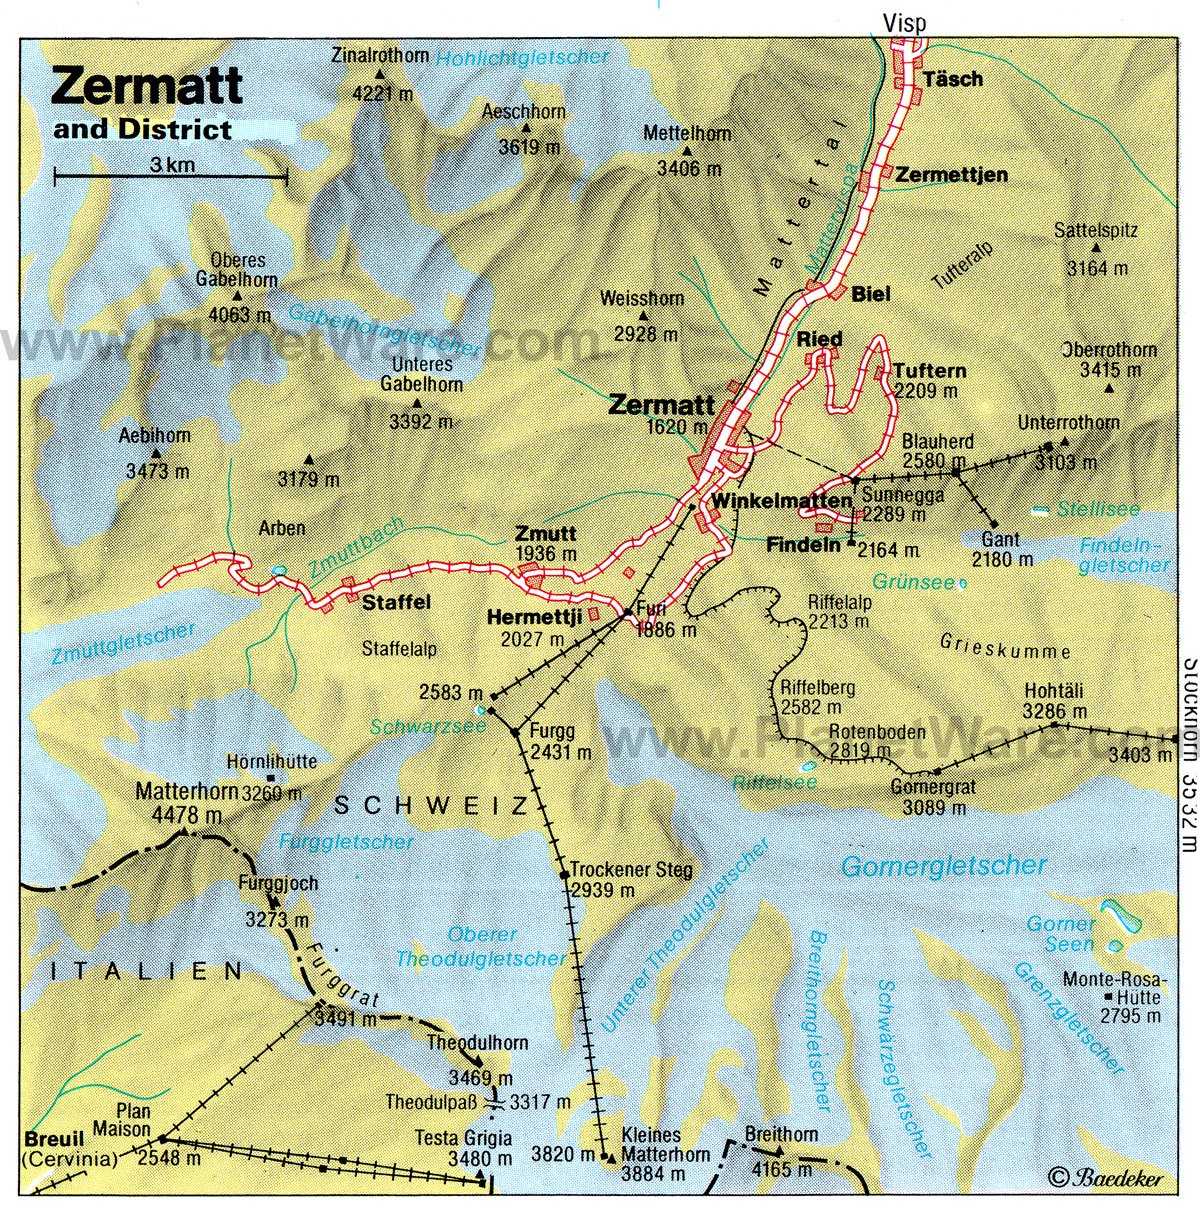 10 Top Tourist Attractions in Zermatt Easy Day Trips PlanetWare